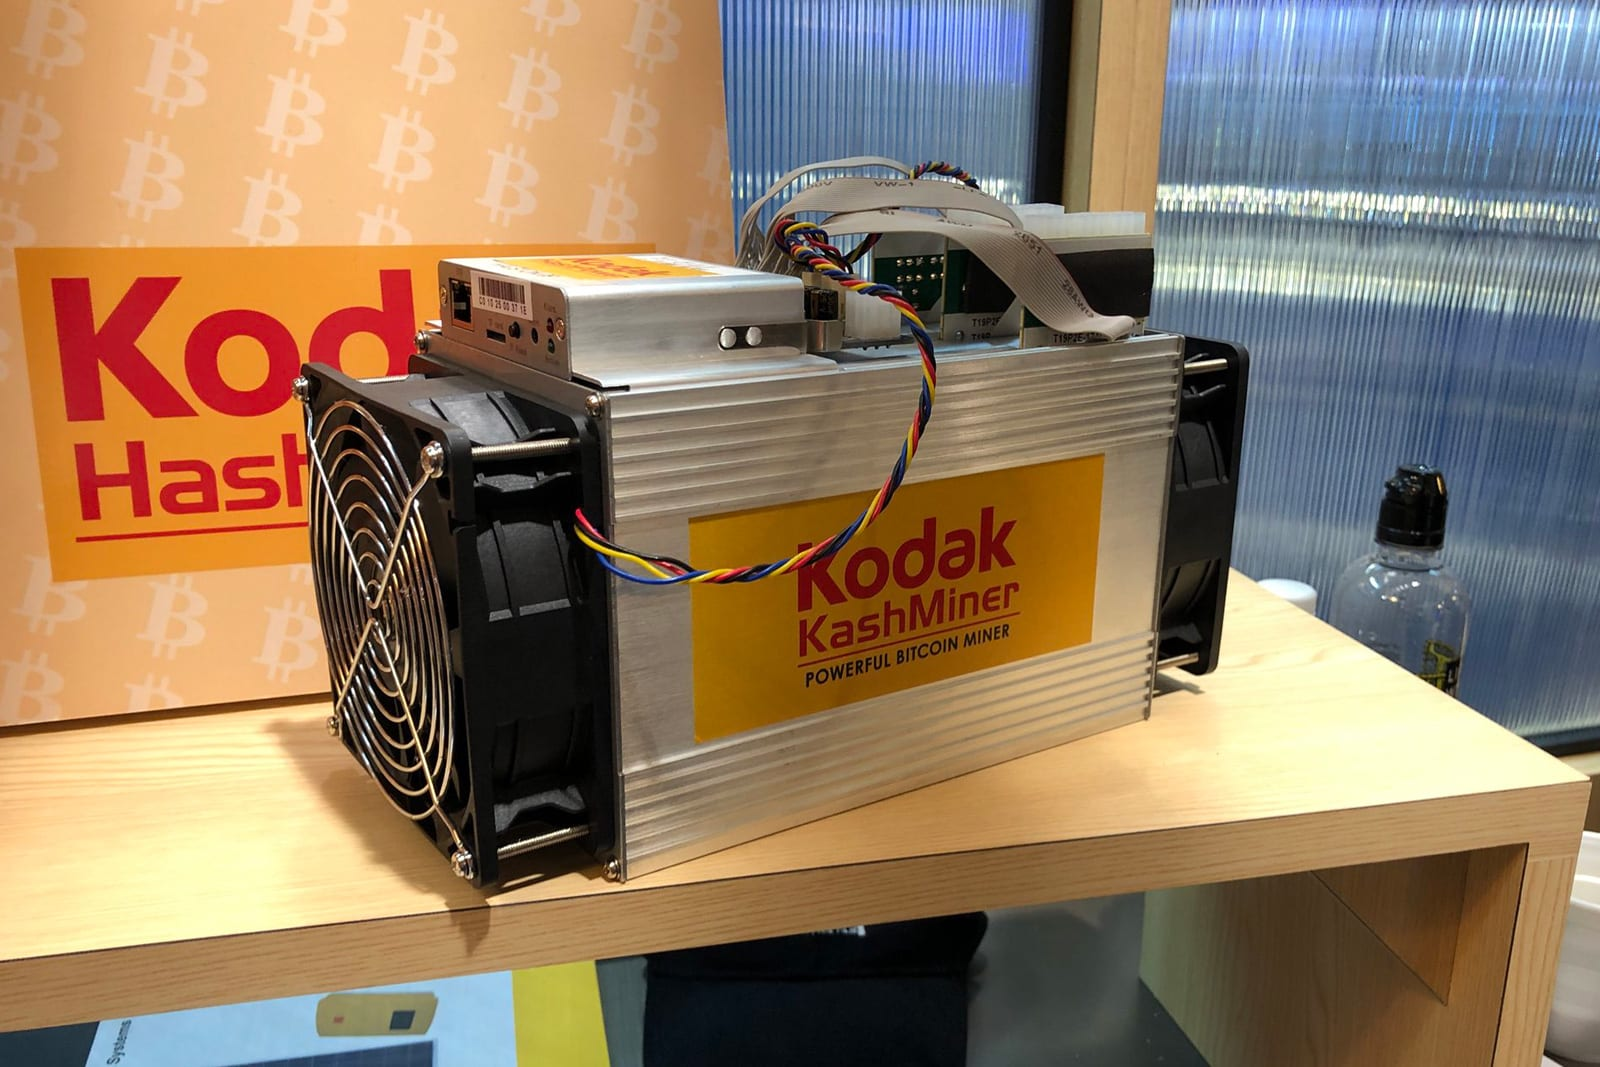 Kodak slaps its name on a sketchy bitcoin-mining business